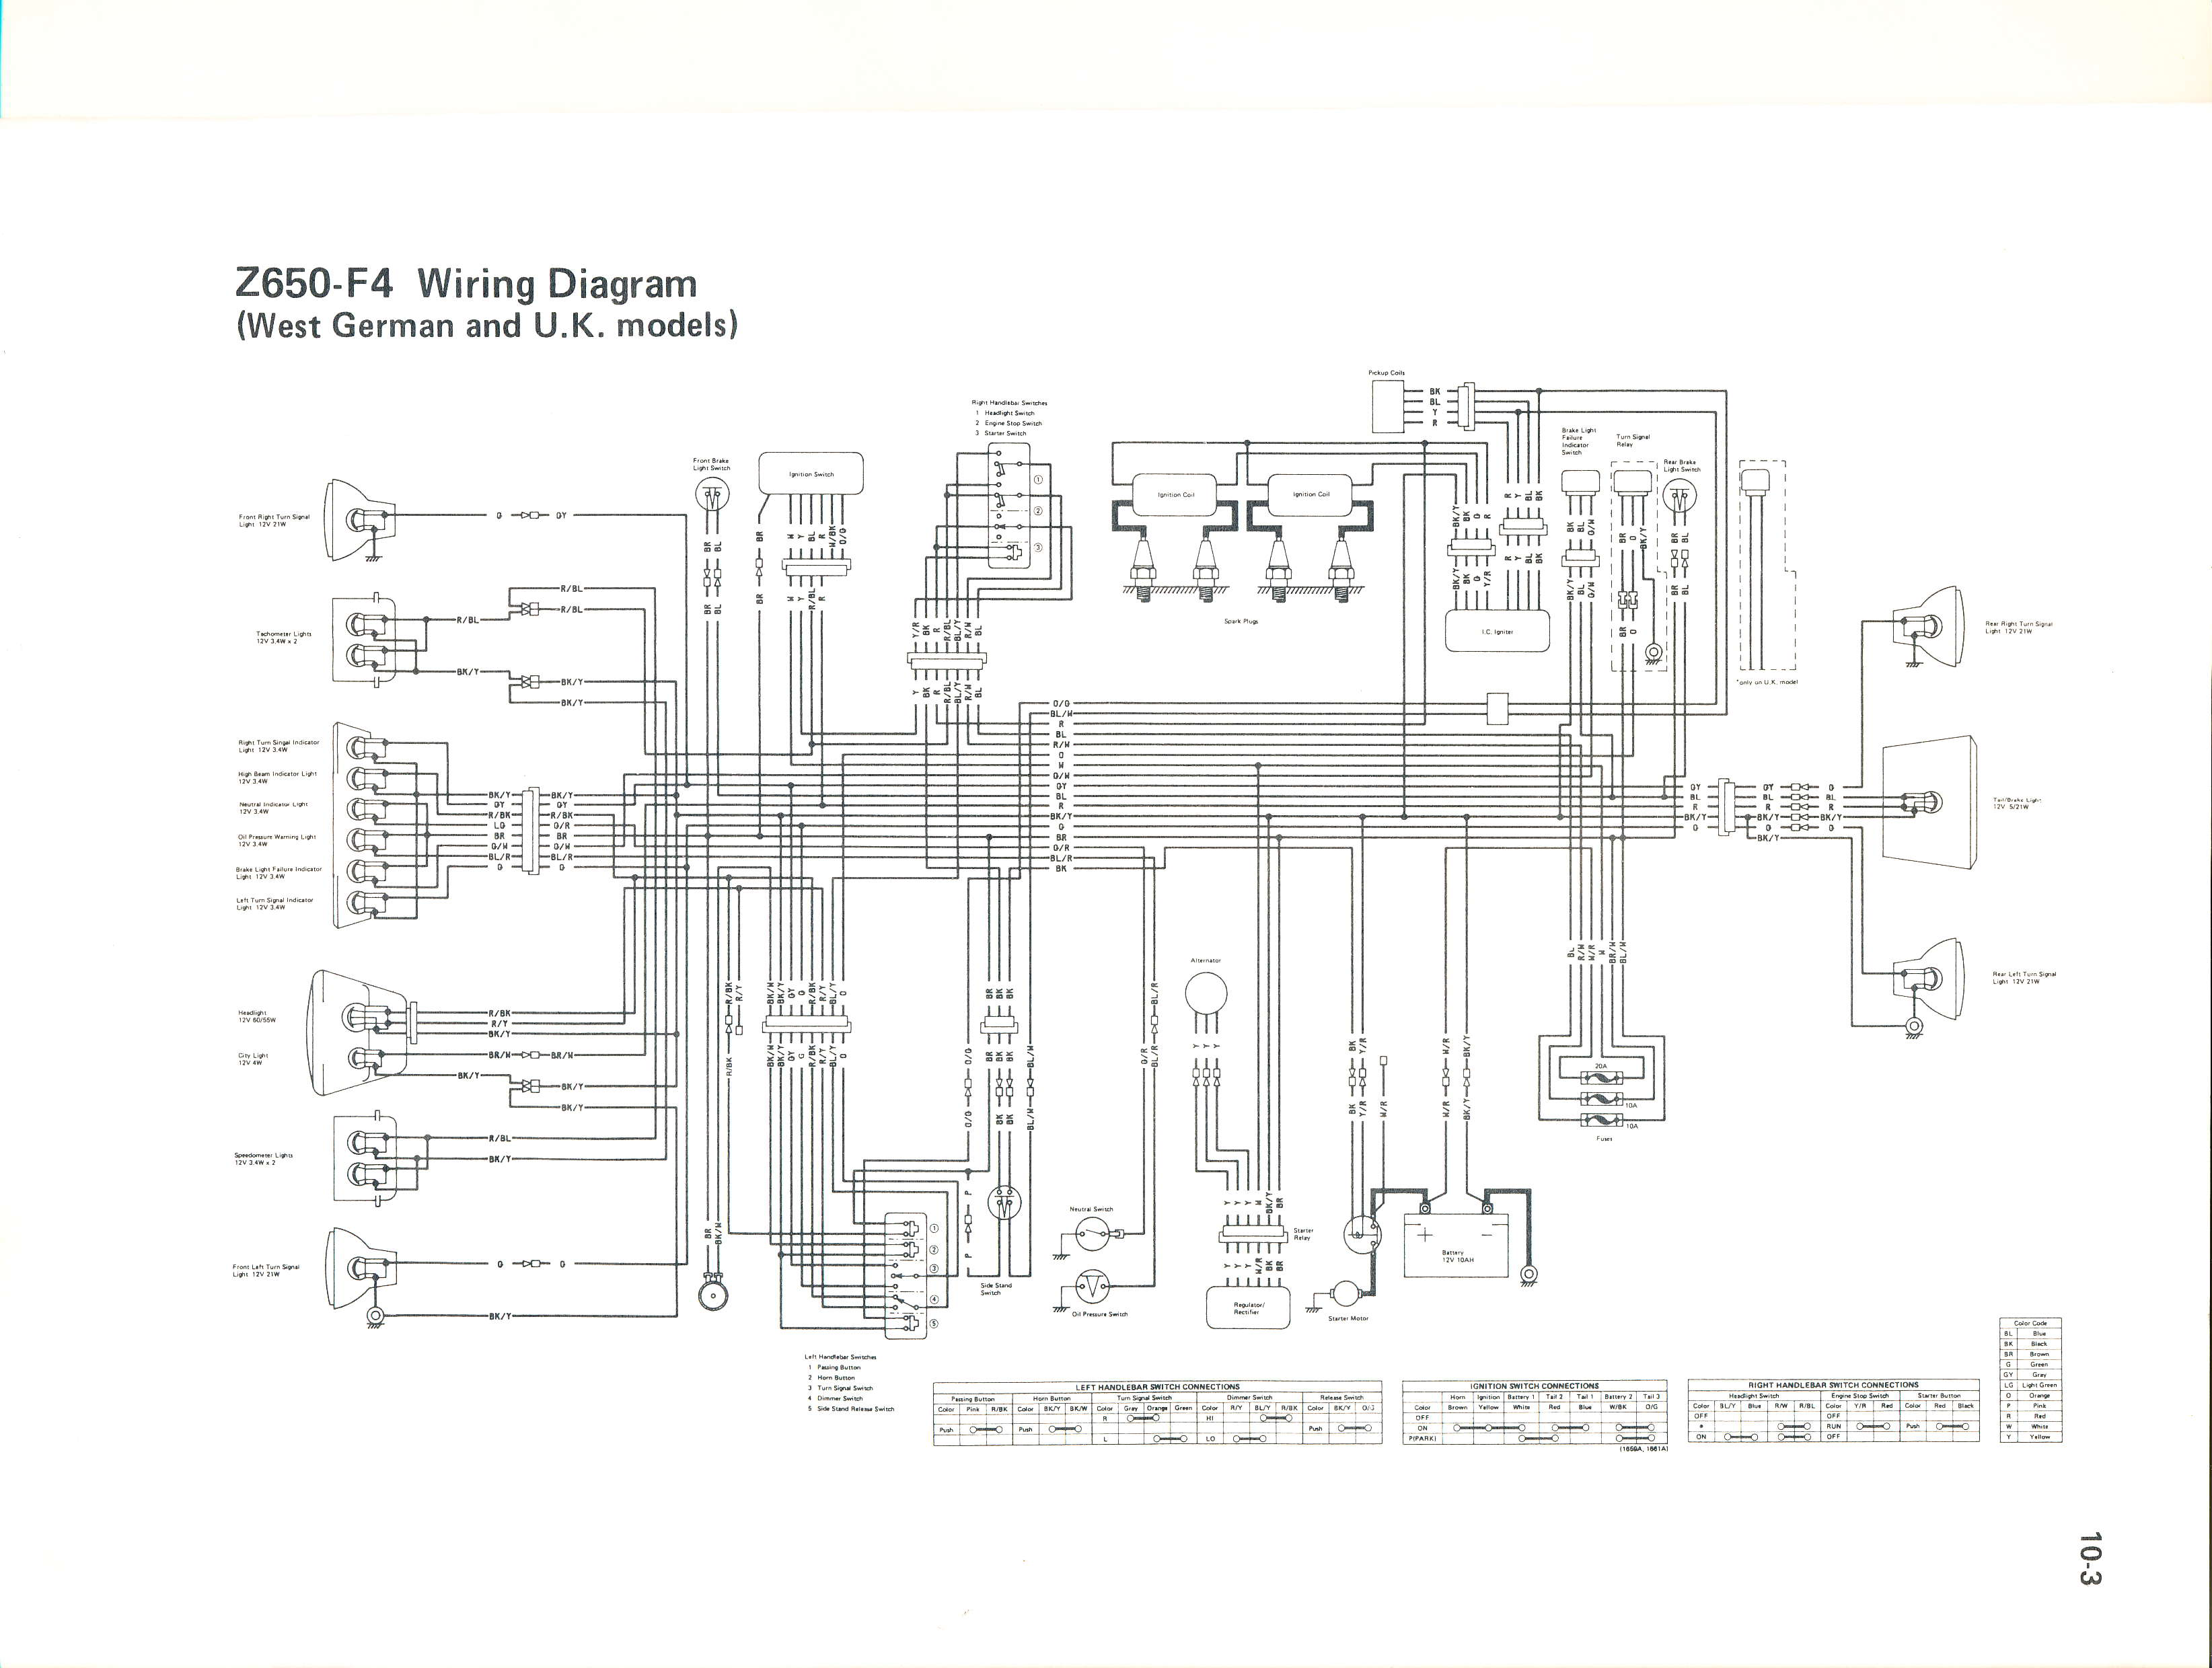 OEM Service Manual Z650 F4 UK Ger wiring diagrams z650 wiring diagram at reclaimingppi.co